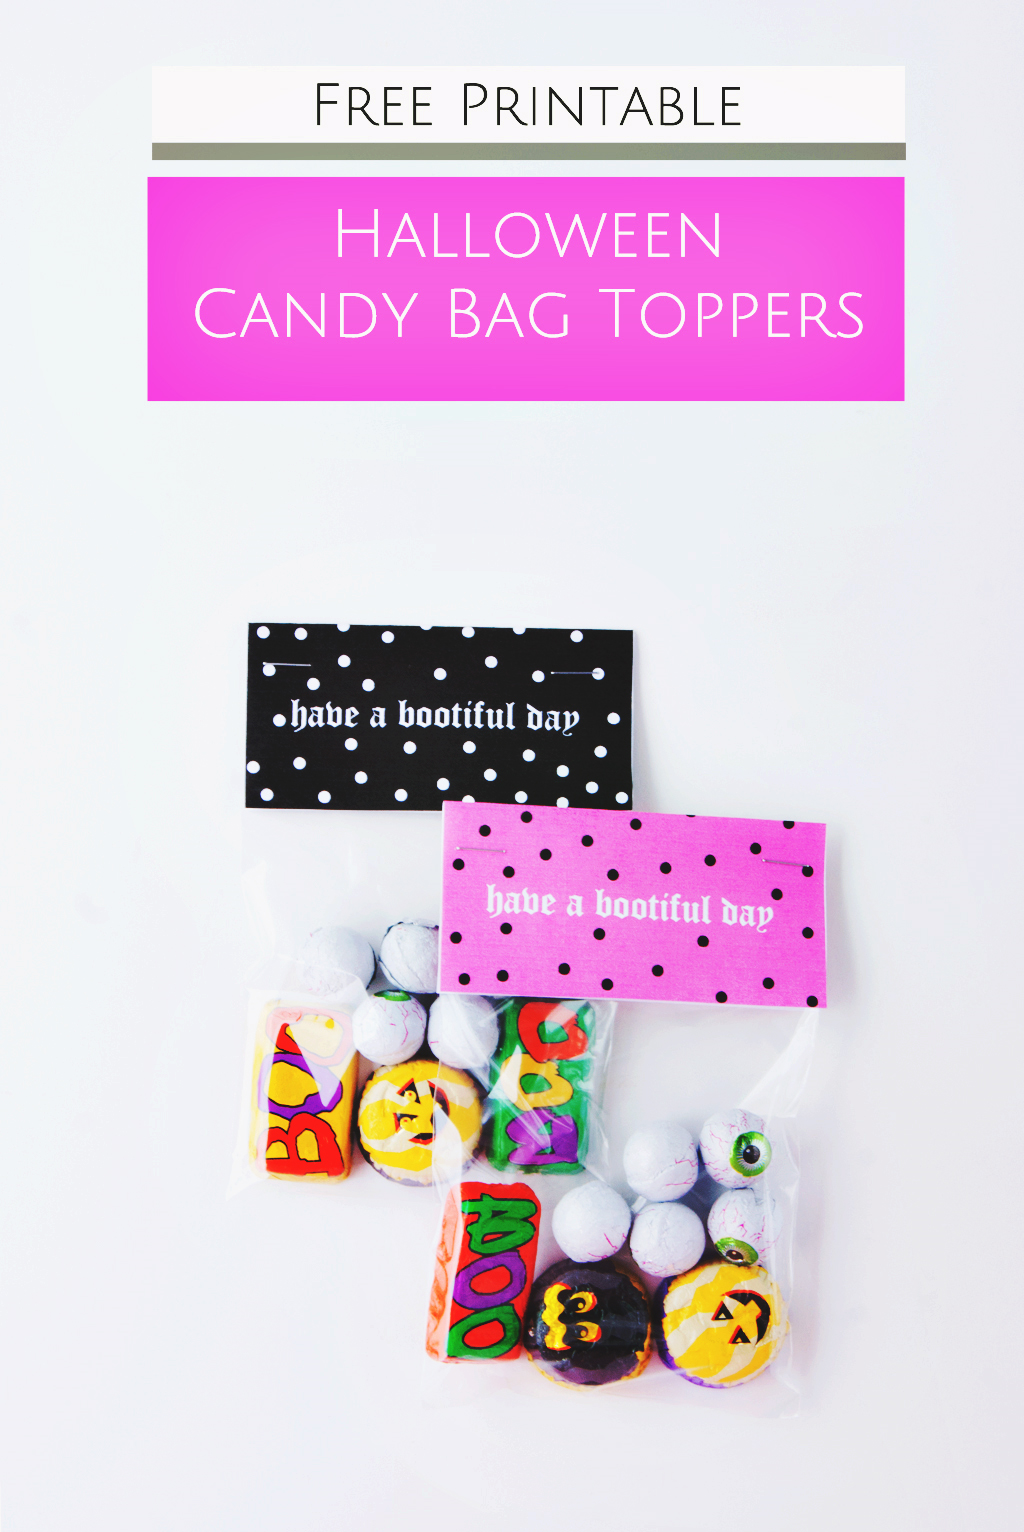 It is a graphic of Free Printable Bag Toppers intended for christmas